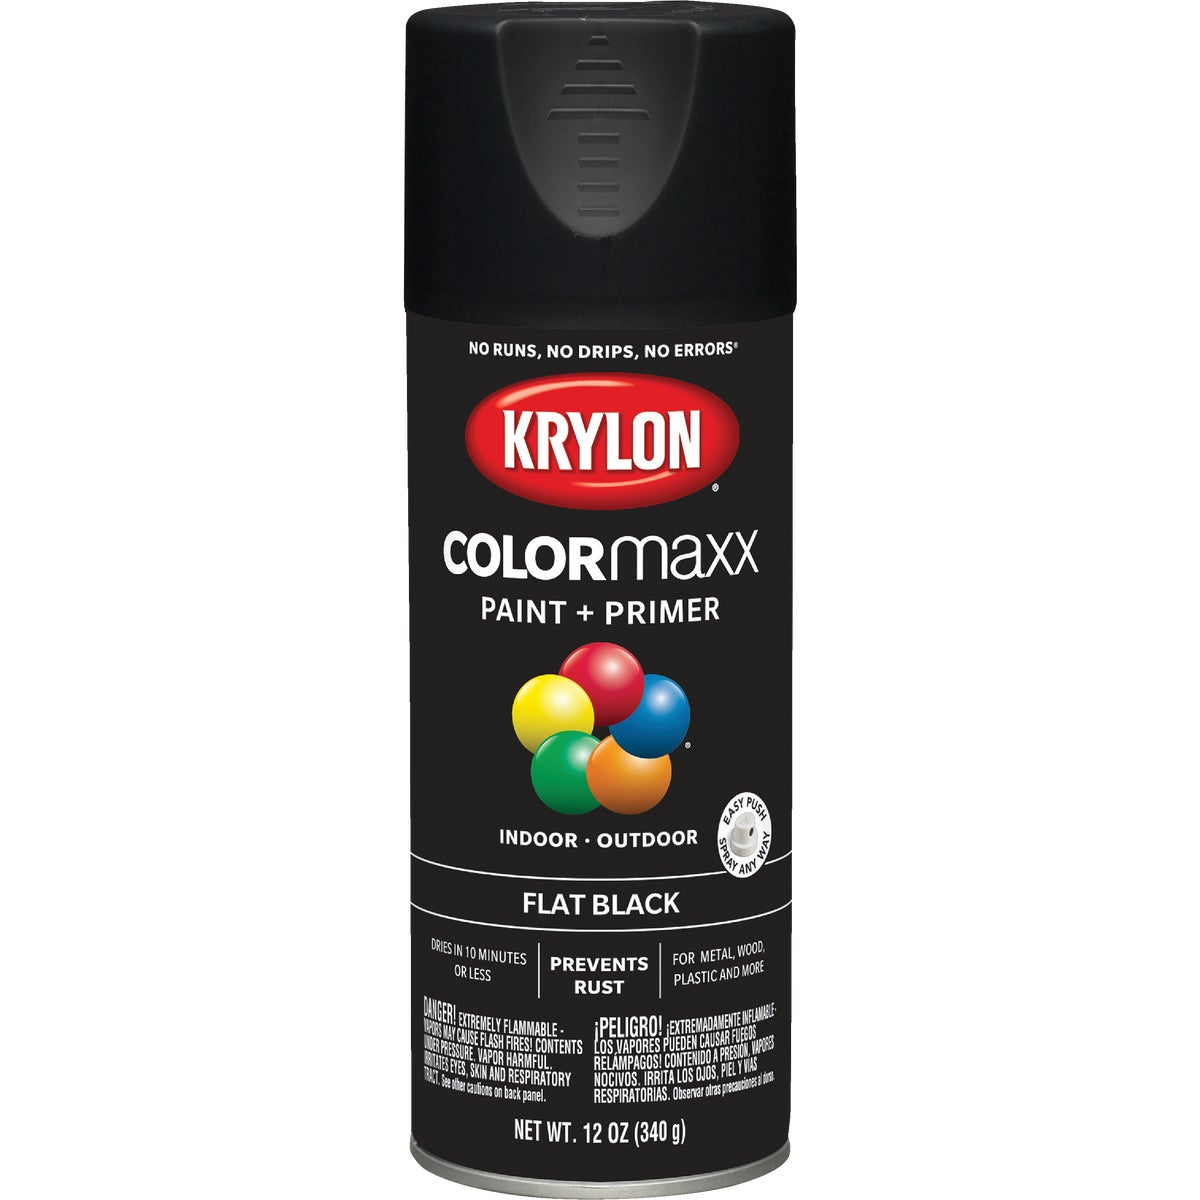 FLAT BLACK SPRAY PAINT - 51602 by Krylon/consumer Div